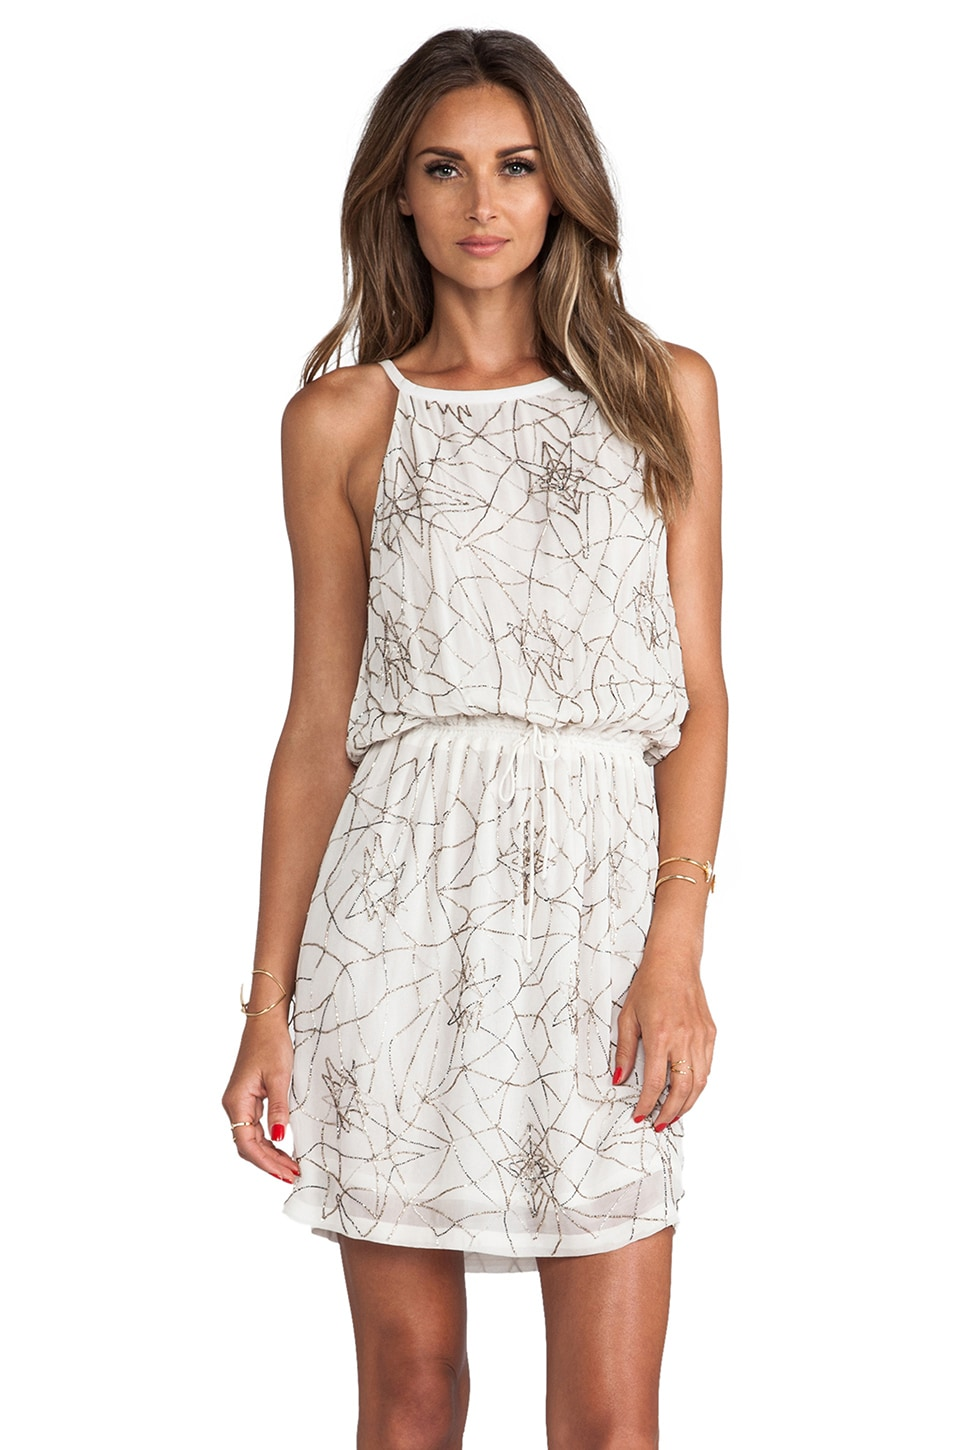 MLV Paris Hand Beaded Halter Dress in Ivory